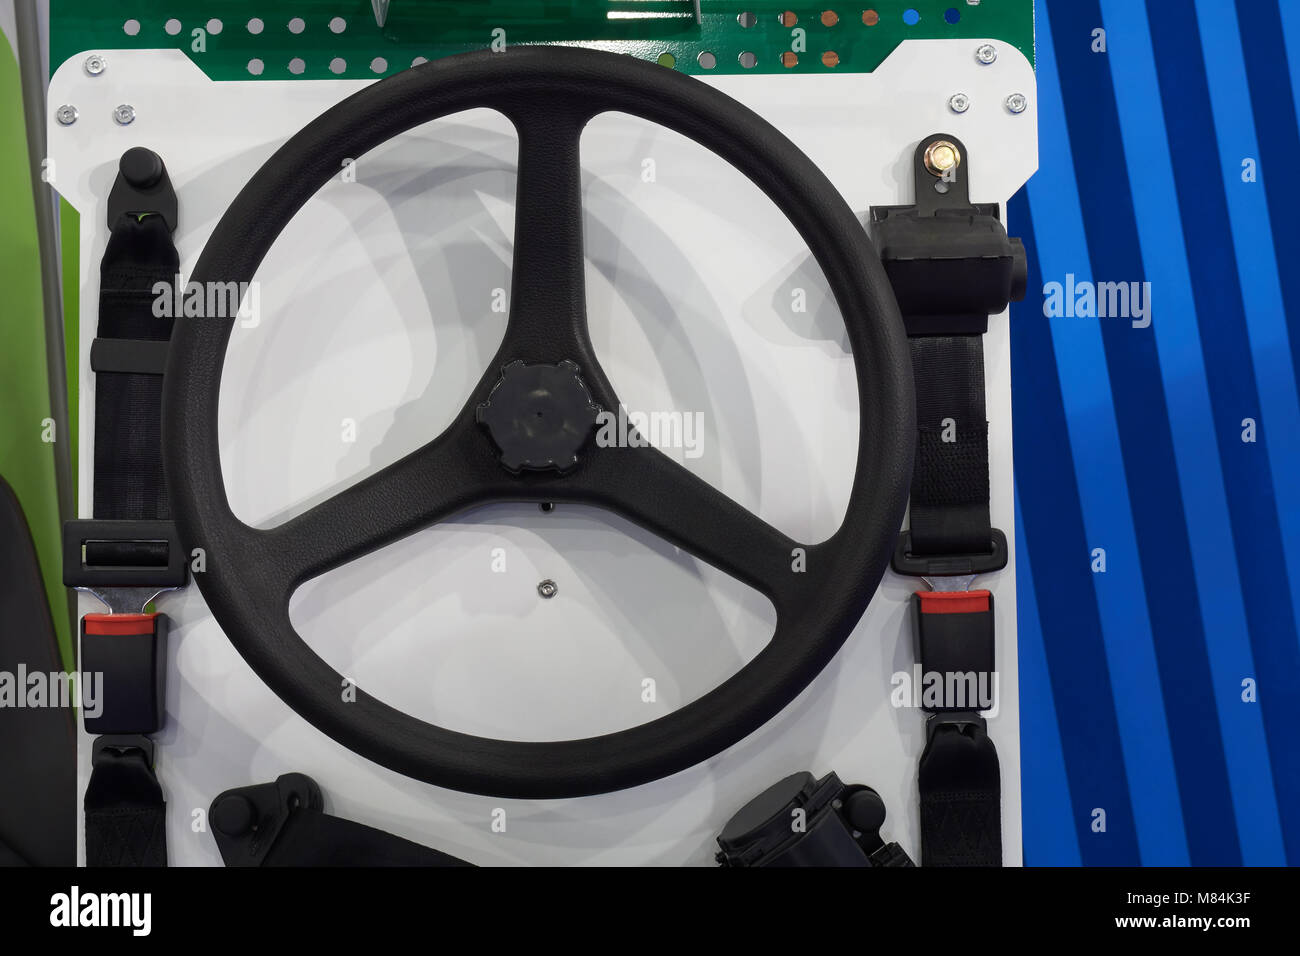 Black plastic wheel and a pair of safety belts - Stock Image